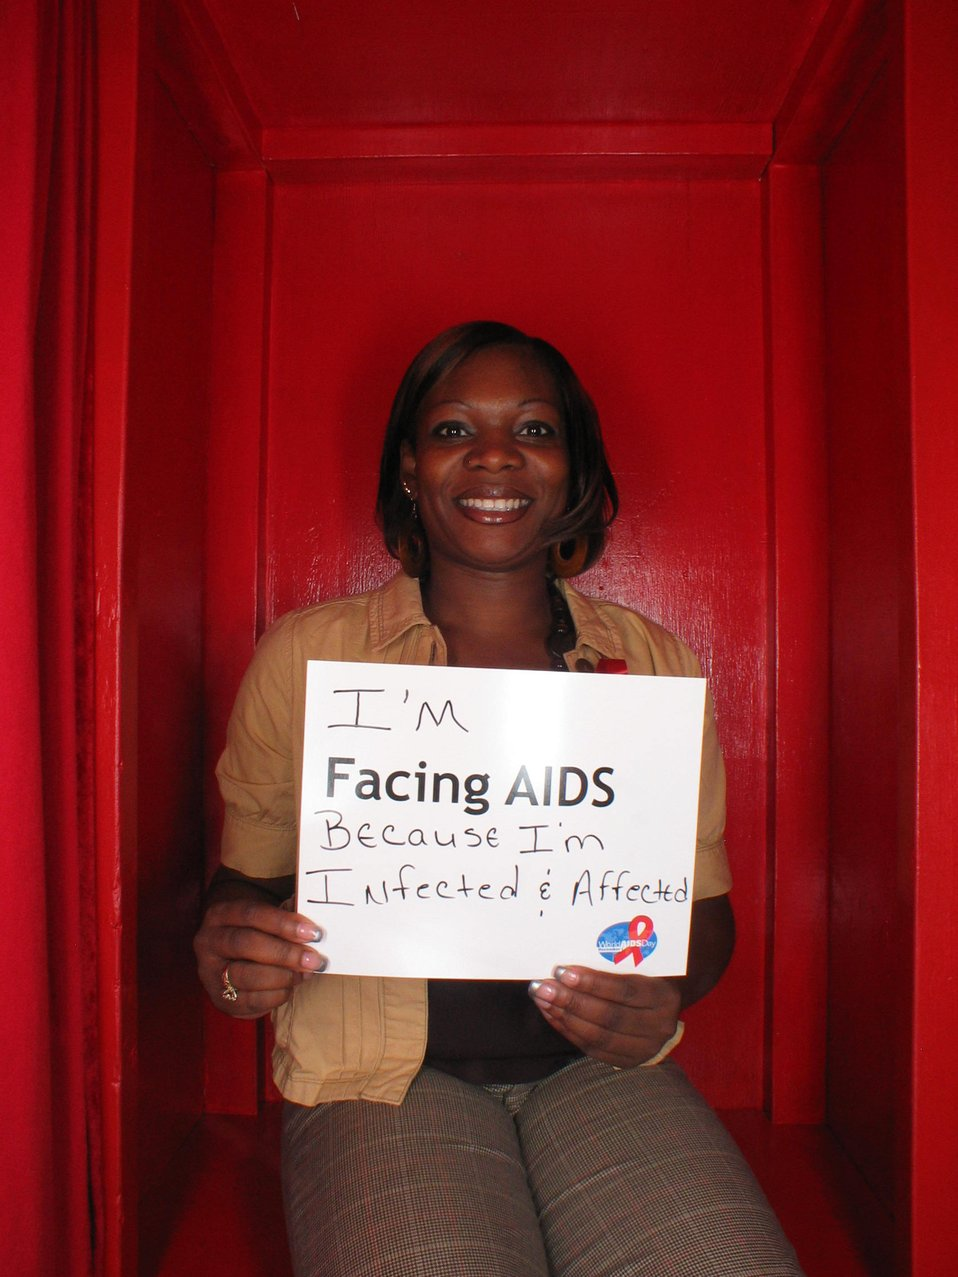 I'm Facing AIDS because I am infected and affected.